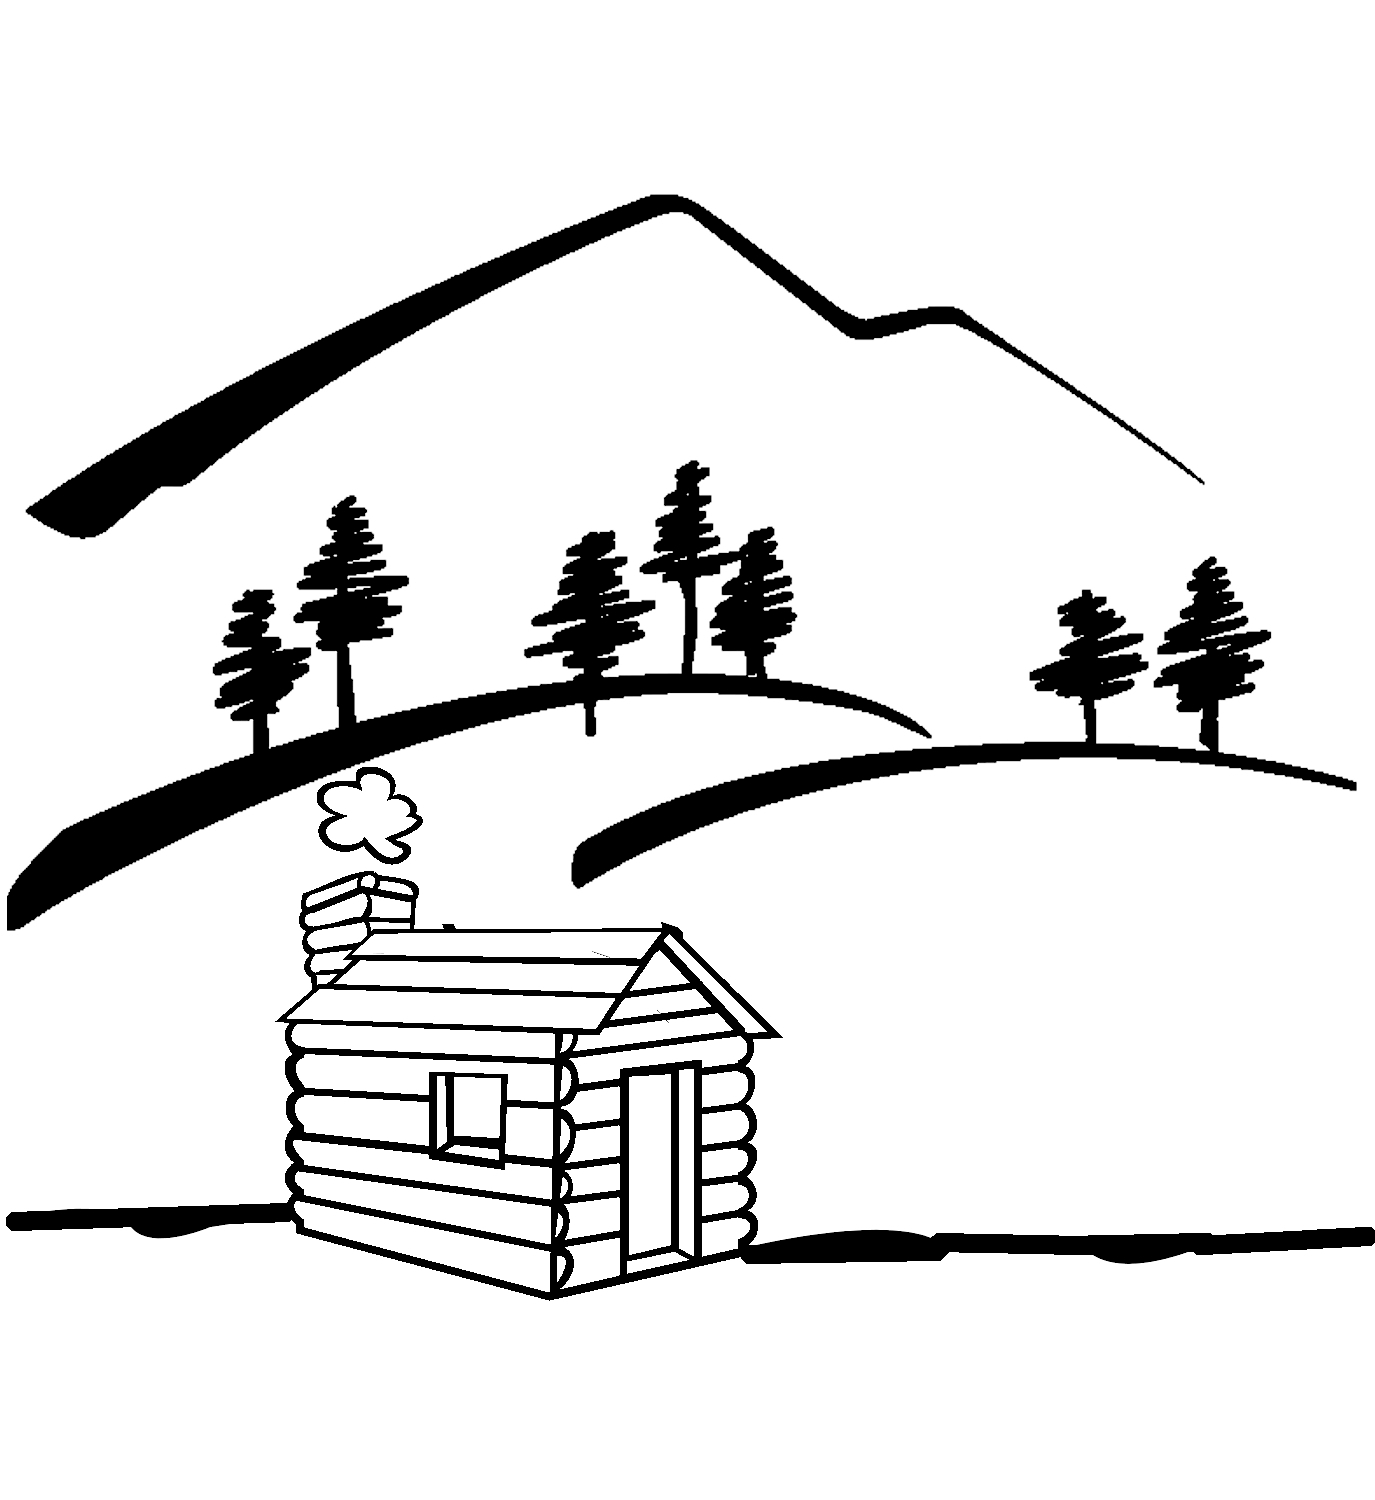 Cabin black and white. Lake clipart woods